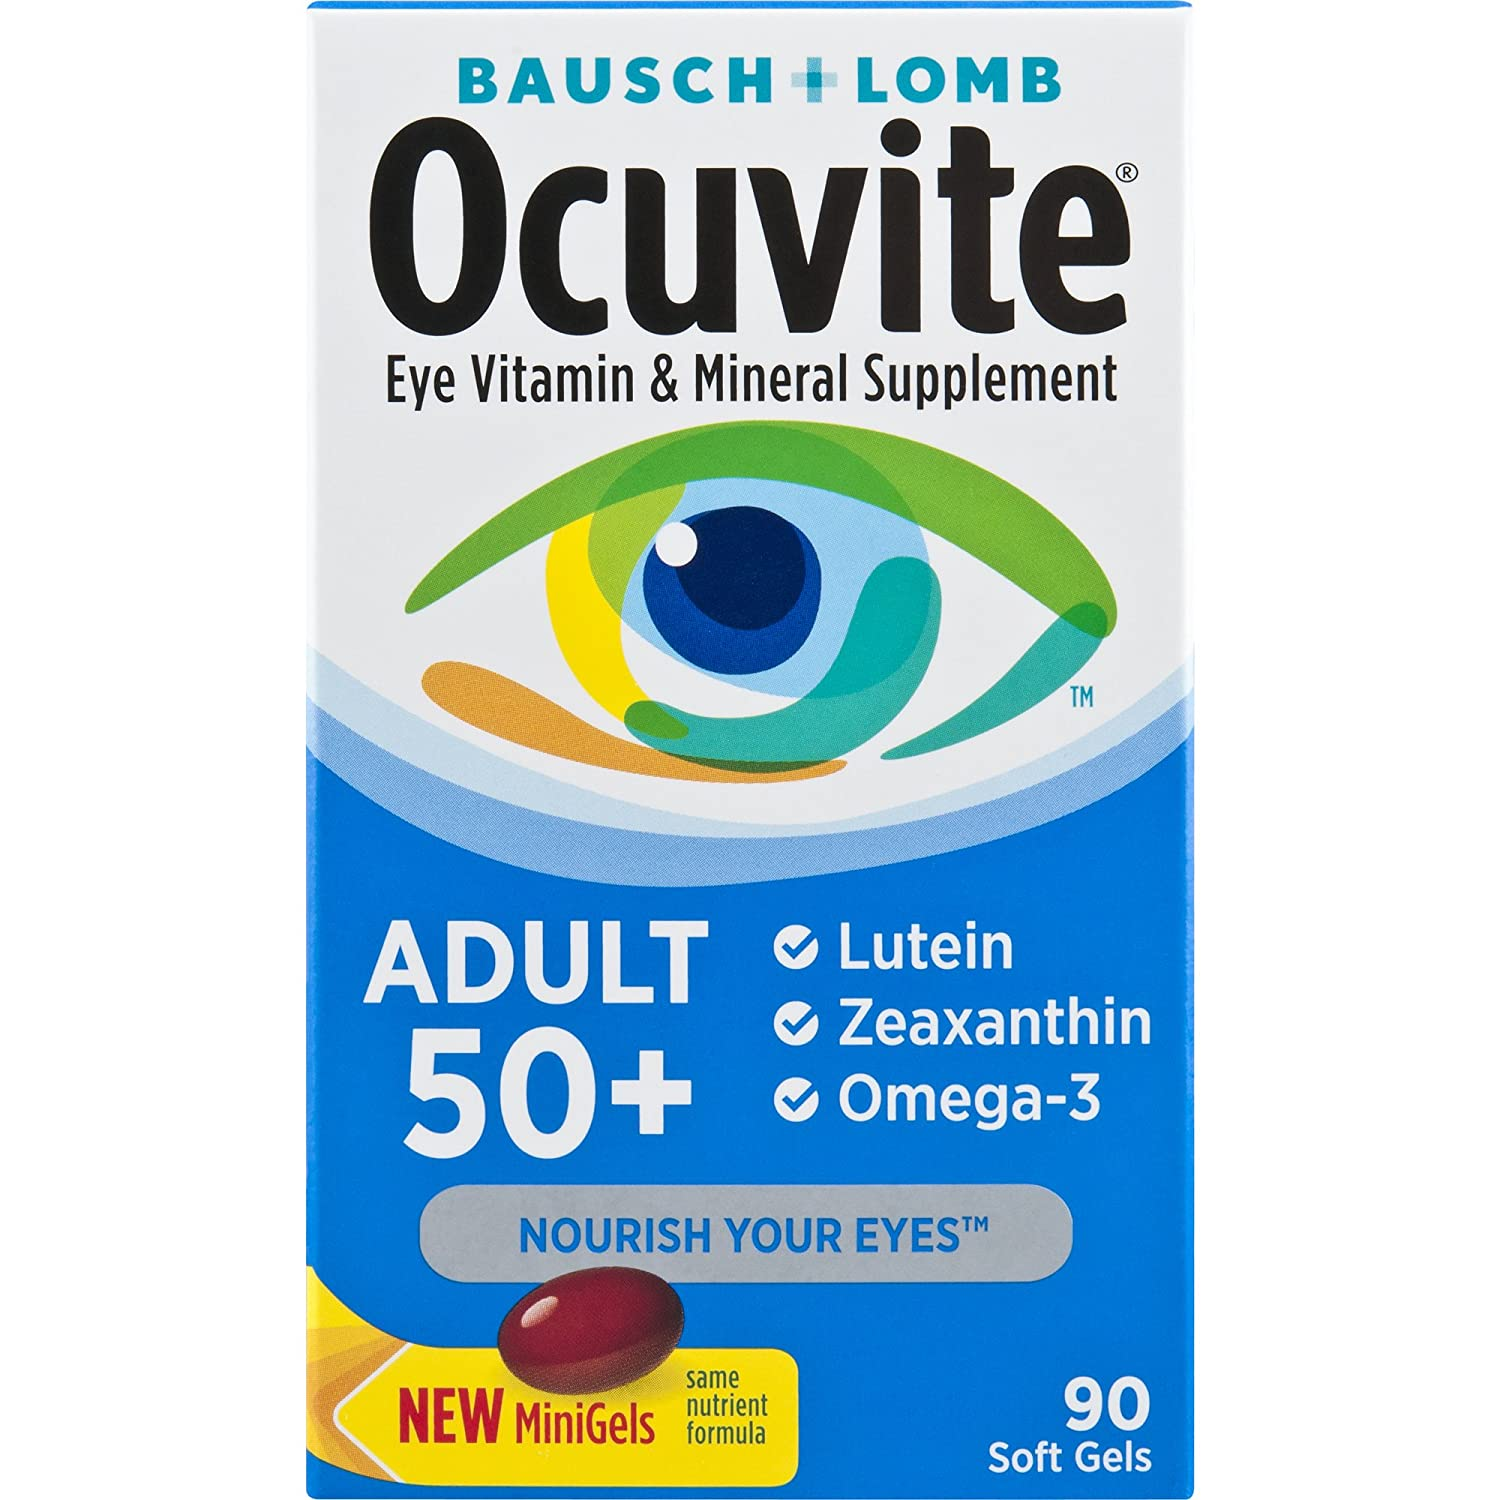 Bausch + Lomb Ocuvite Adult 50+ Vitamin & Mineral Supplement with Lutein, Zeaxanthin, and Omega-3 Soft Gels, 90-Count Bottle